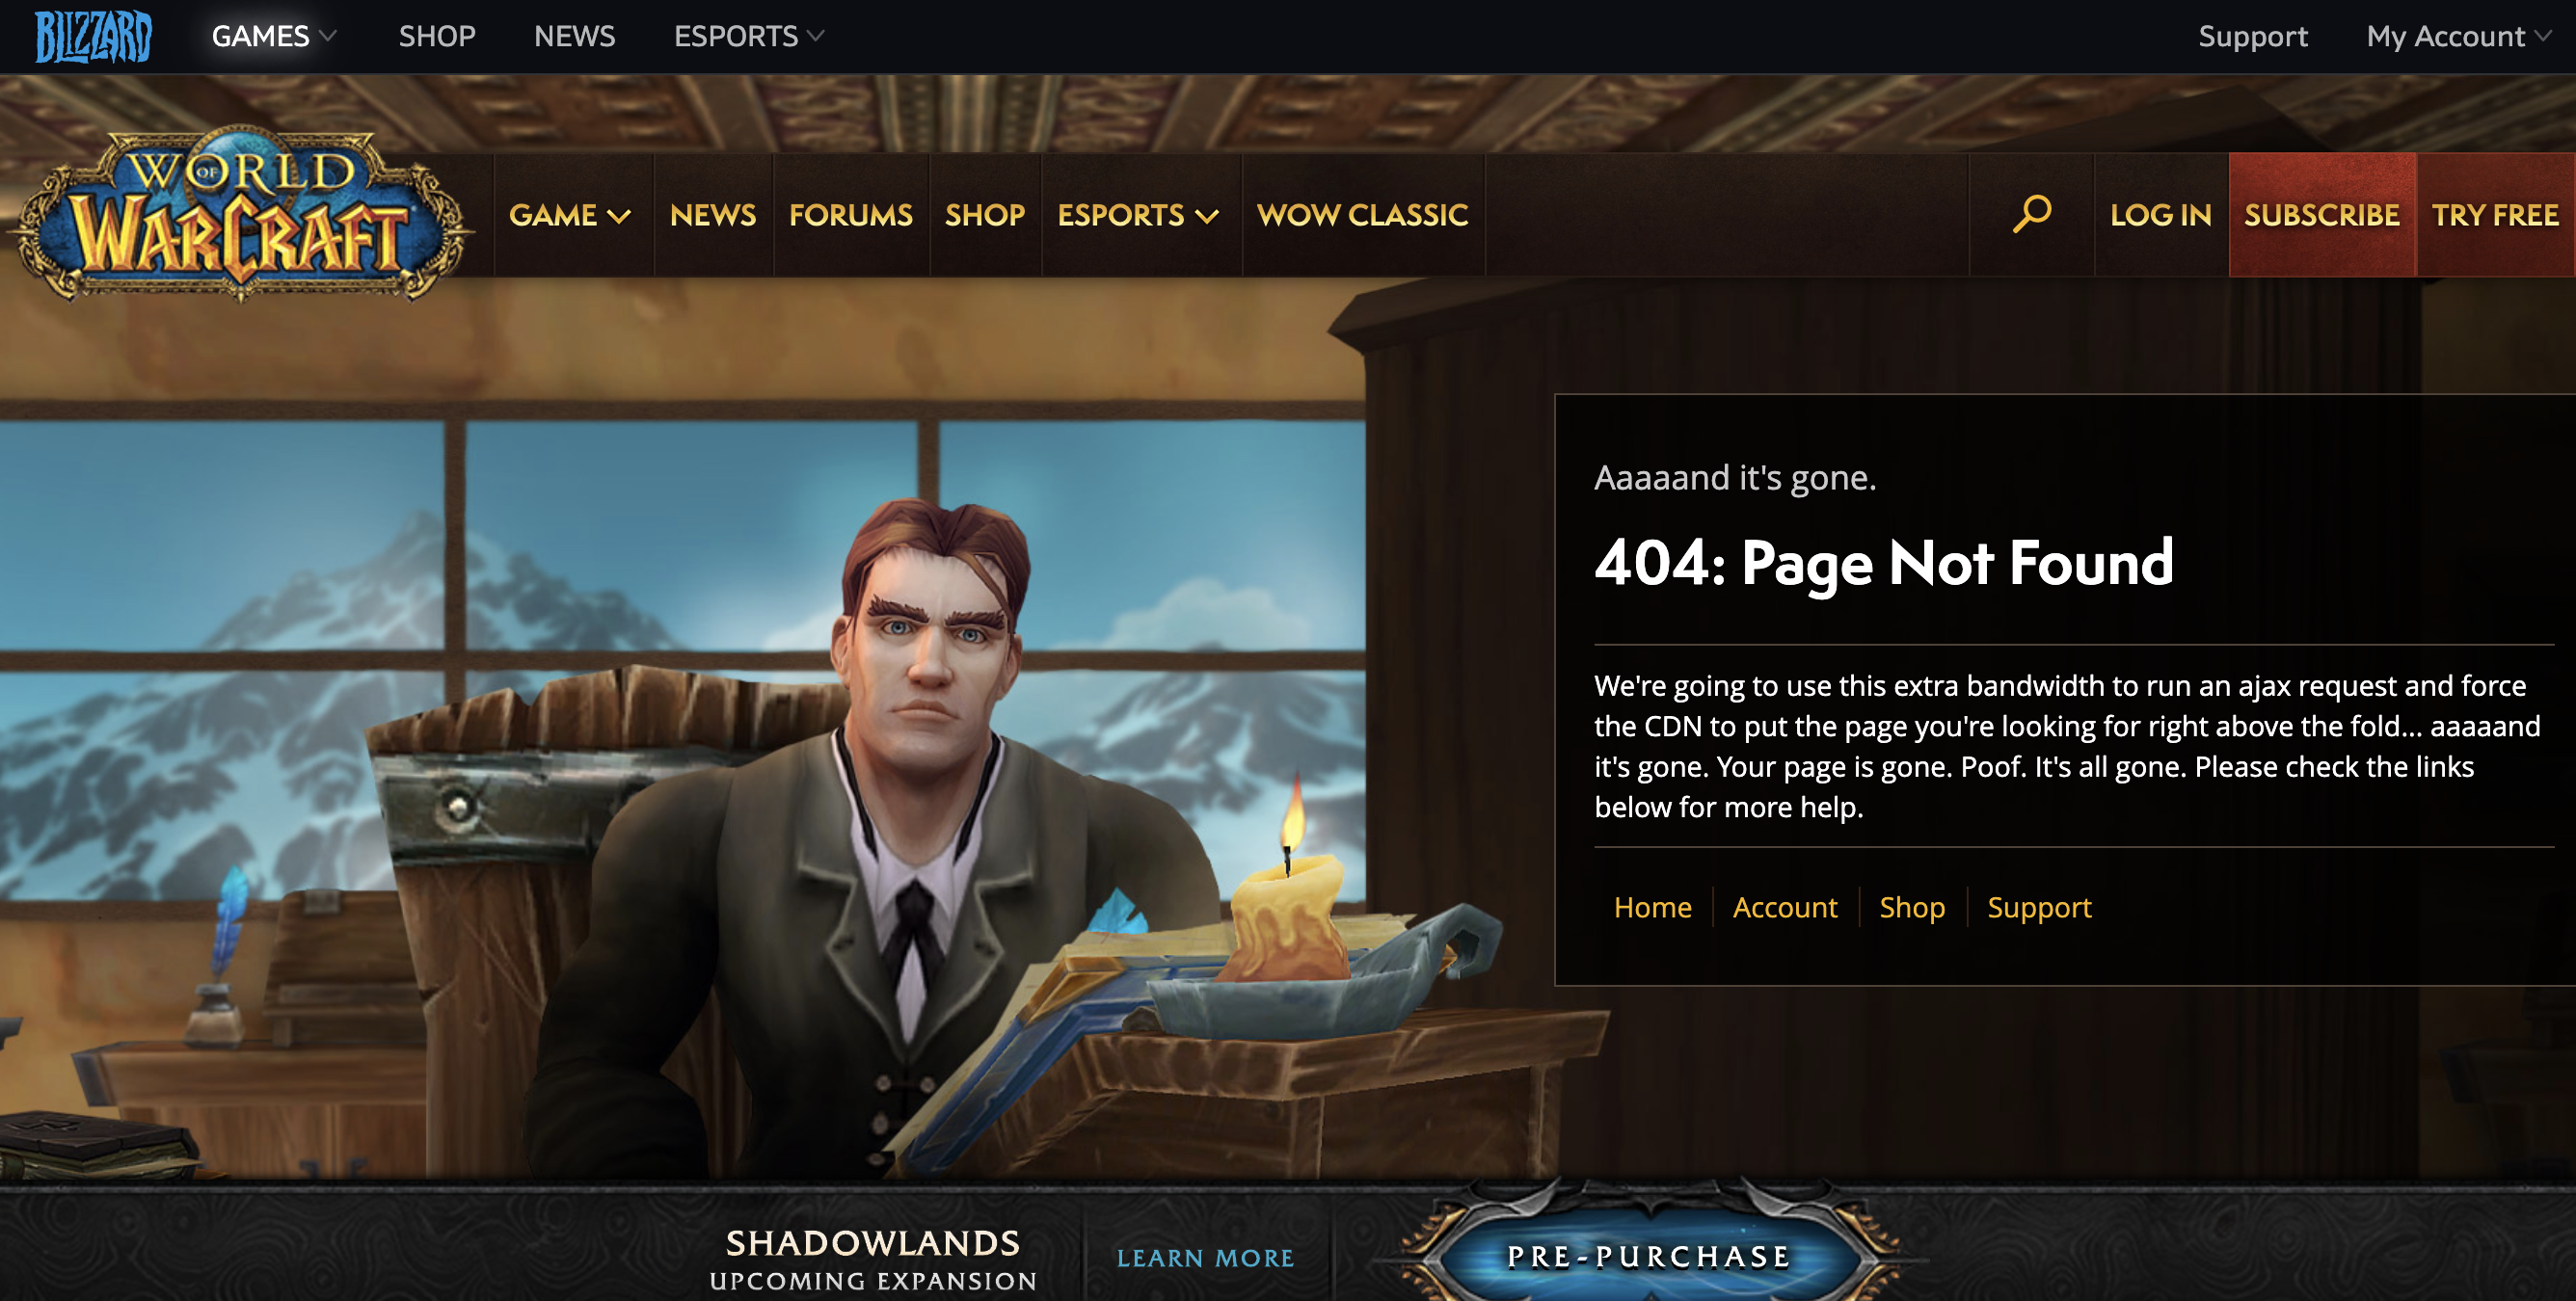 world of warcraft 404 page